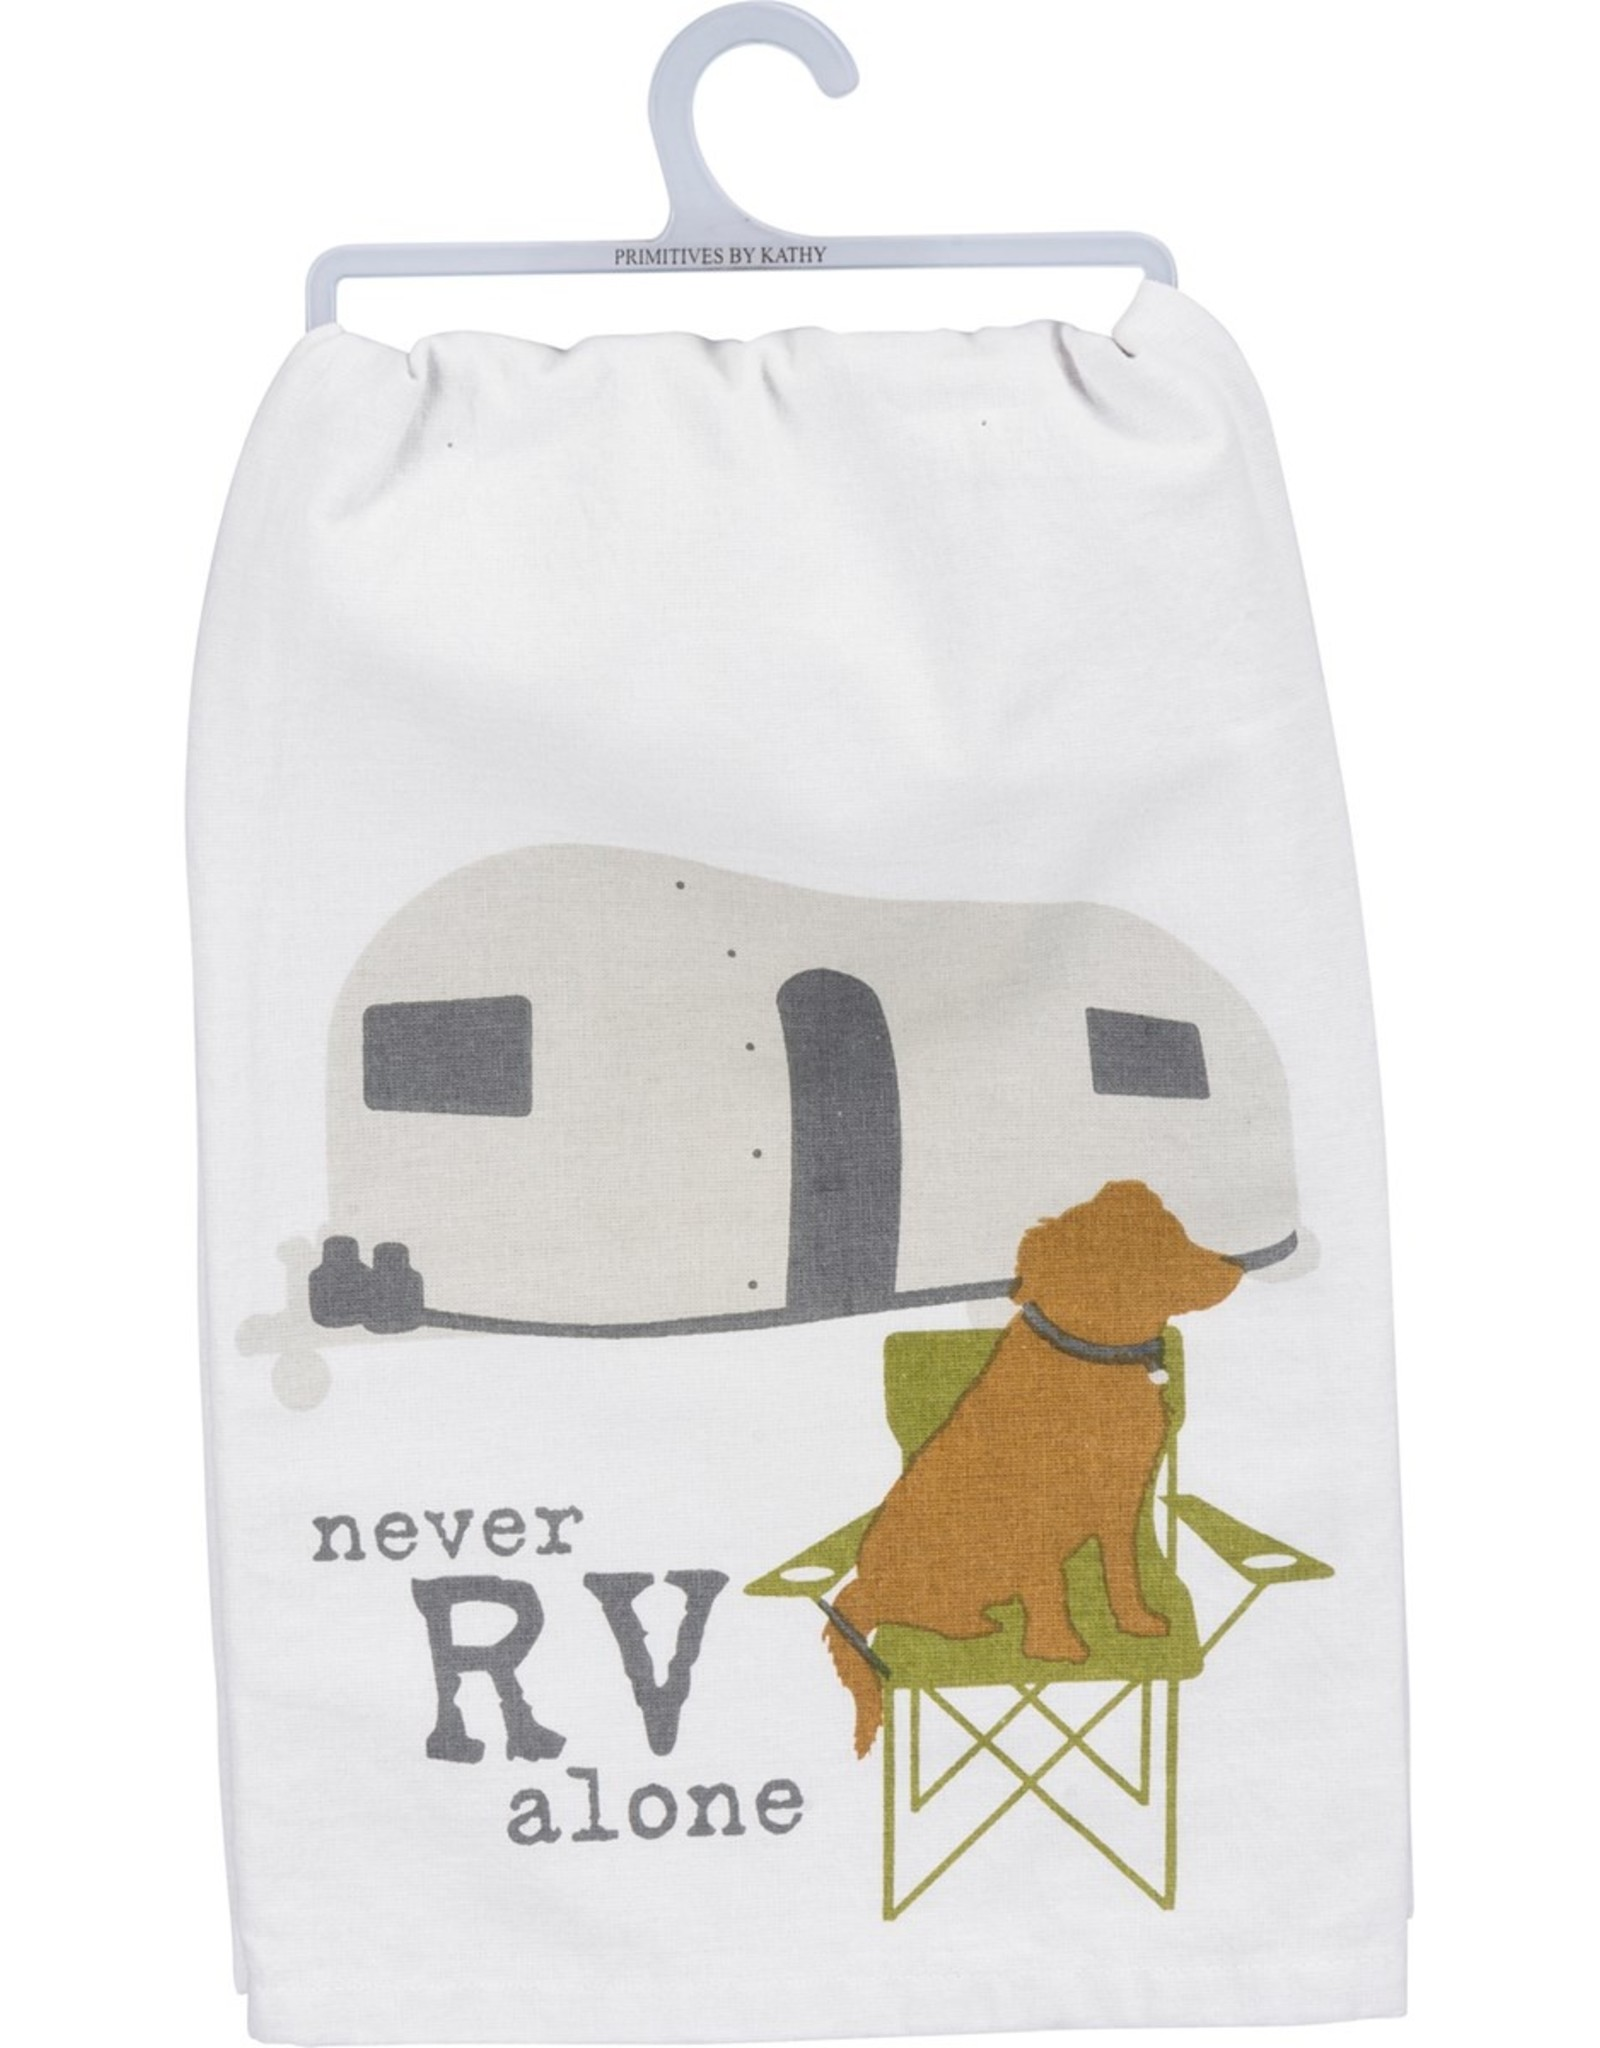 PRIMITIVES BY KATHY DISH TOWEL - NEVER RV ALONE